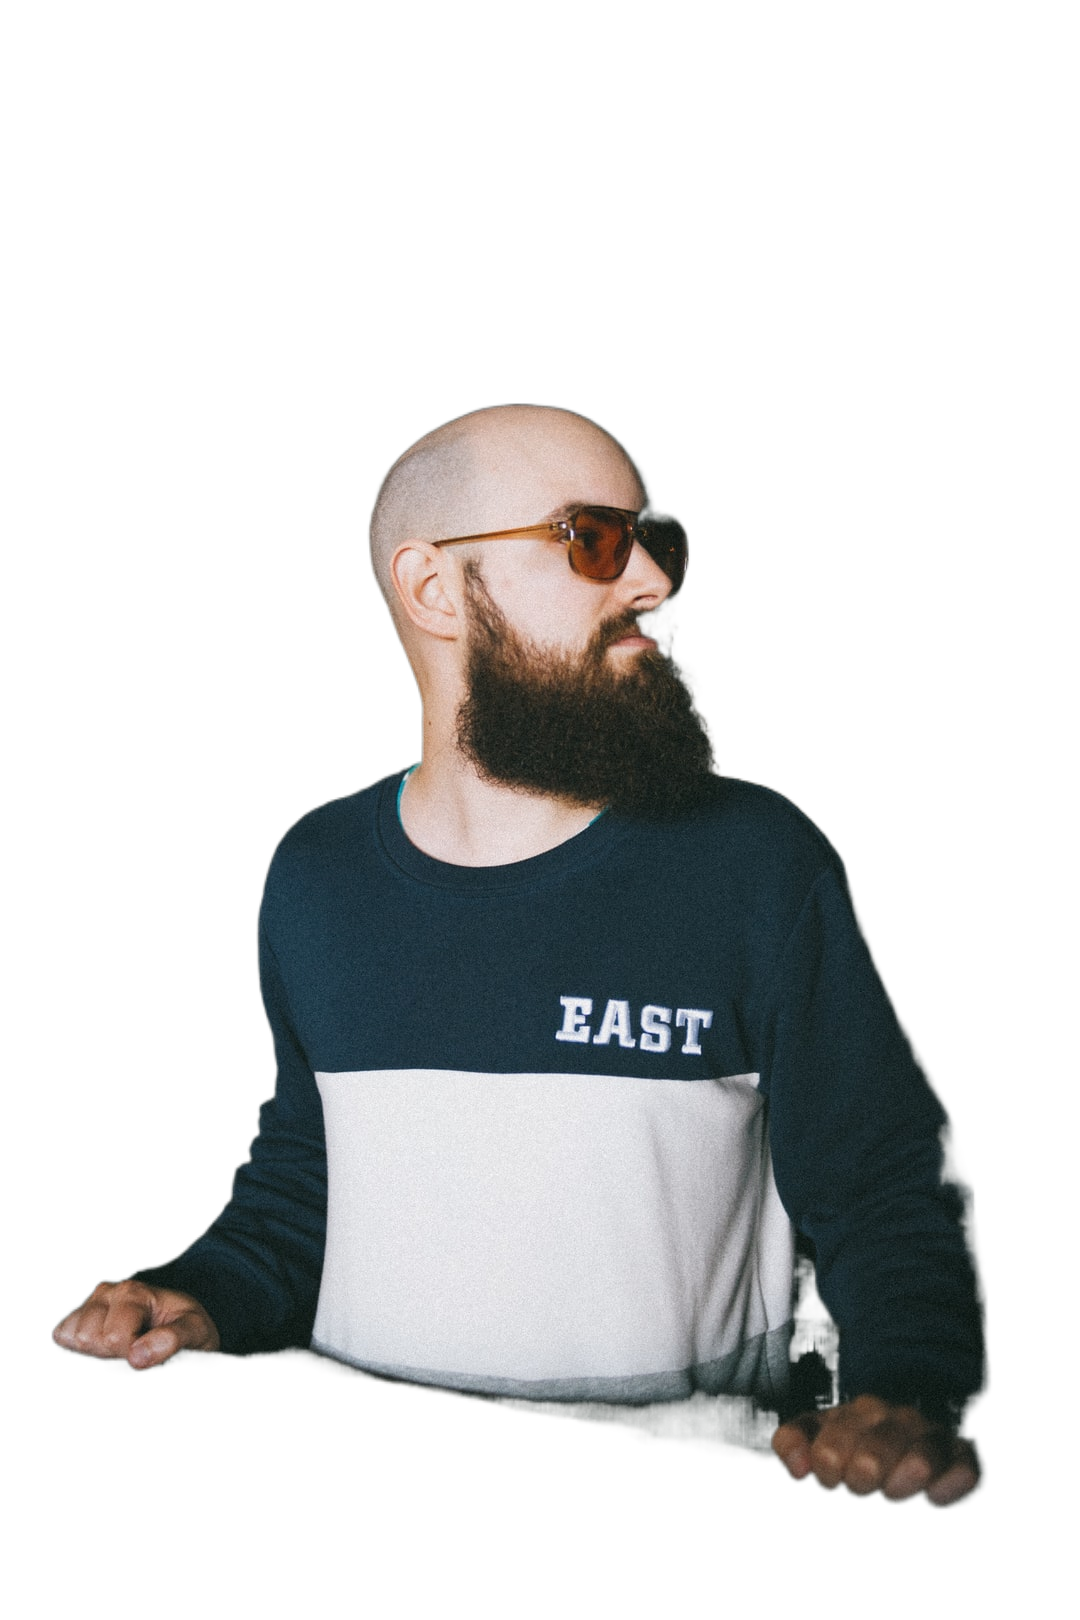 man in black and white crew neck long sleeve shirt wearing black sunglasses